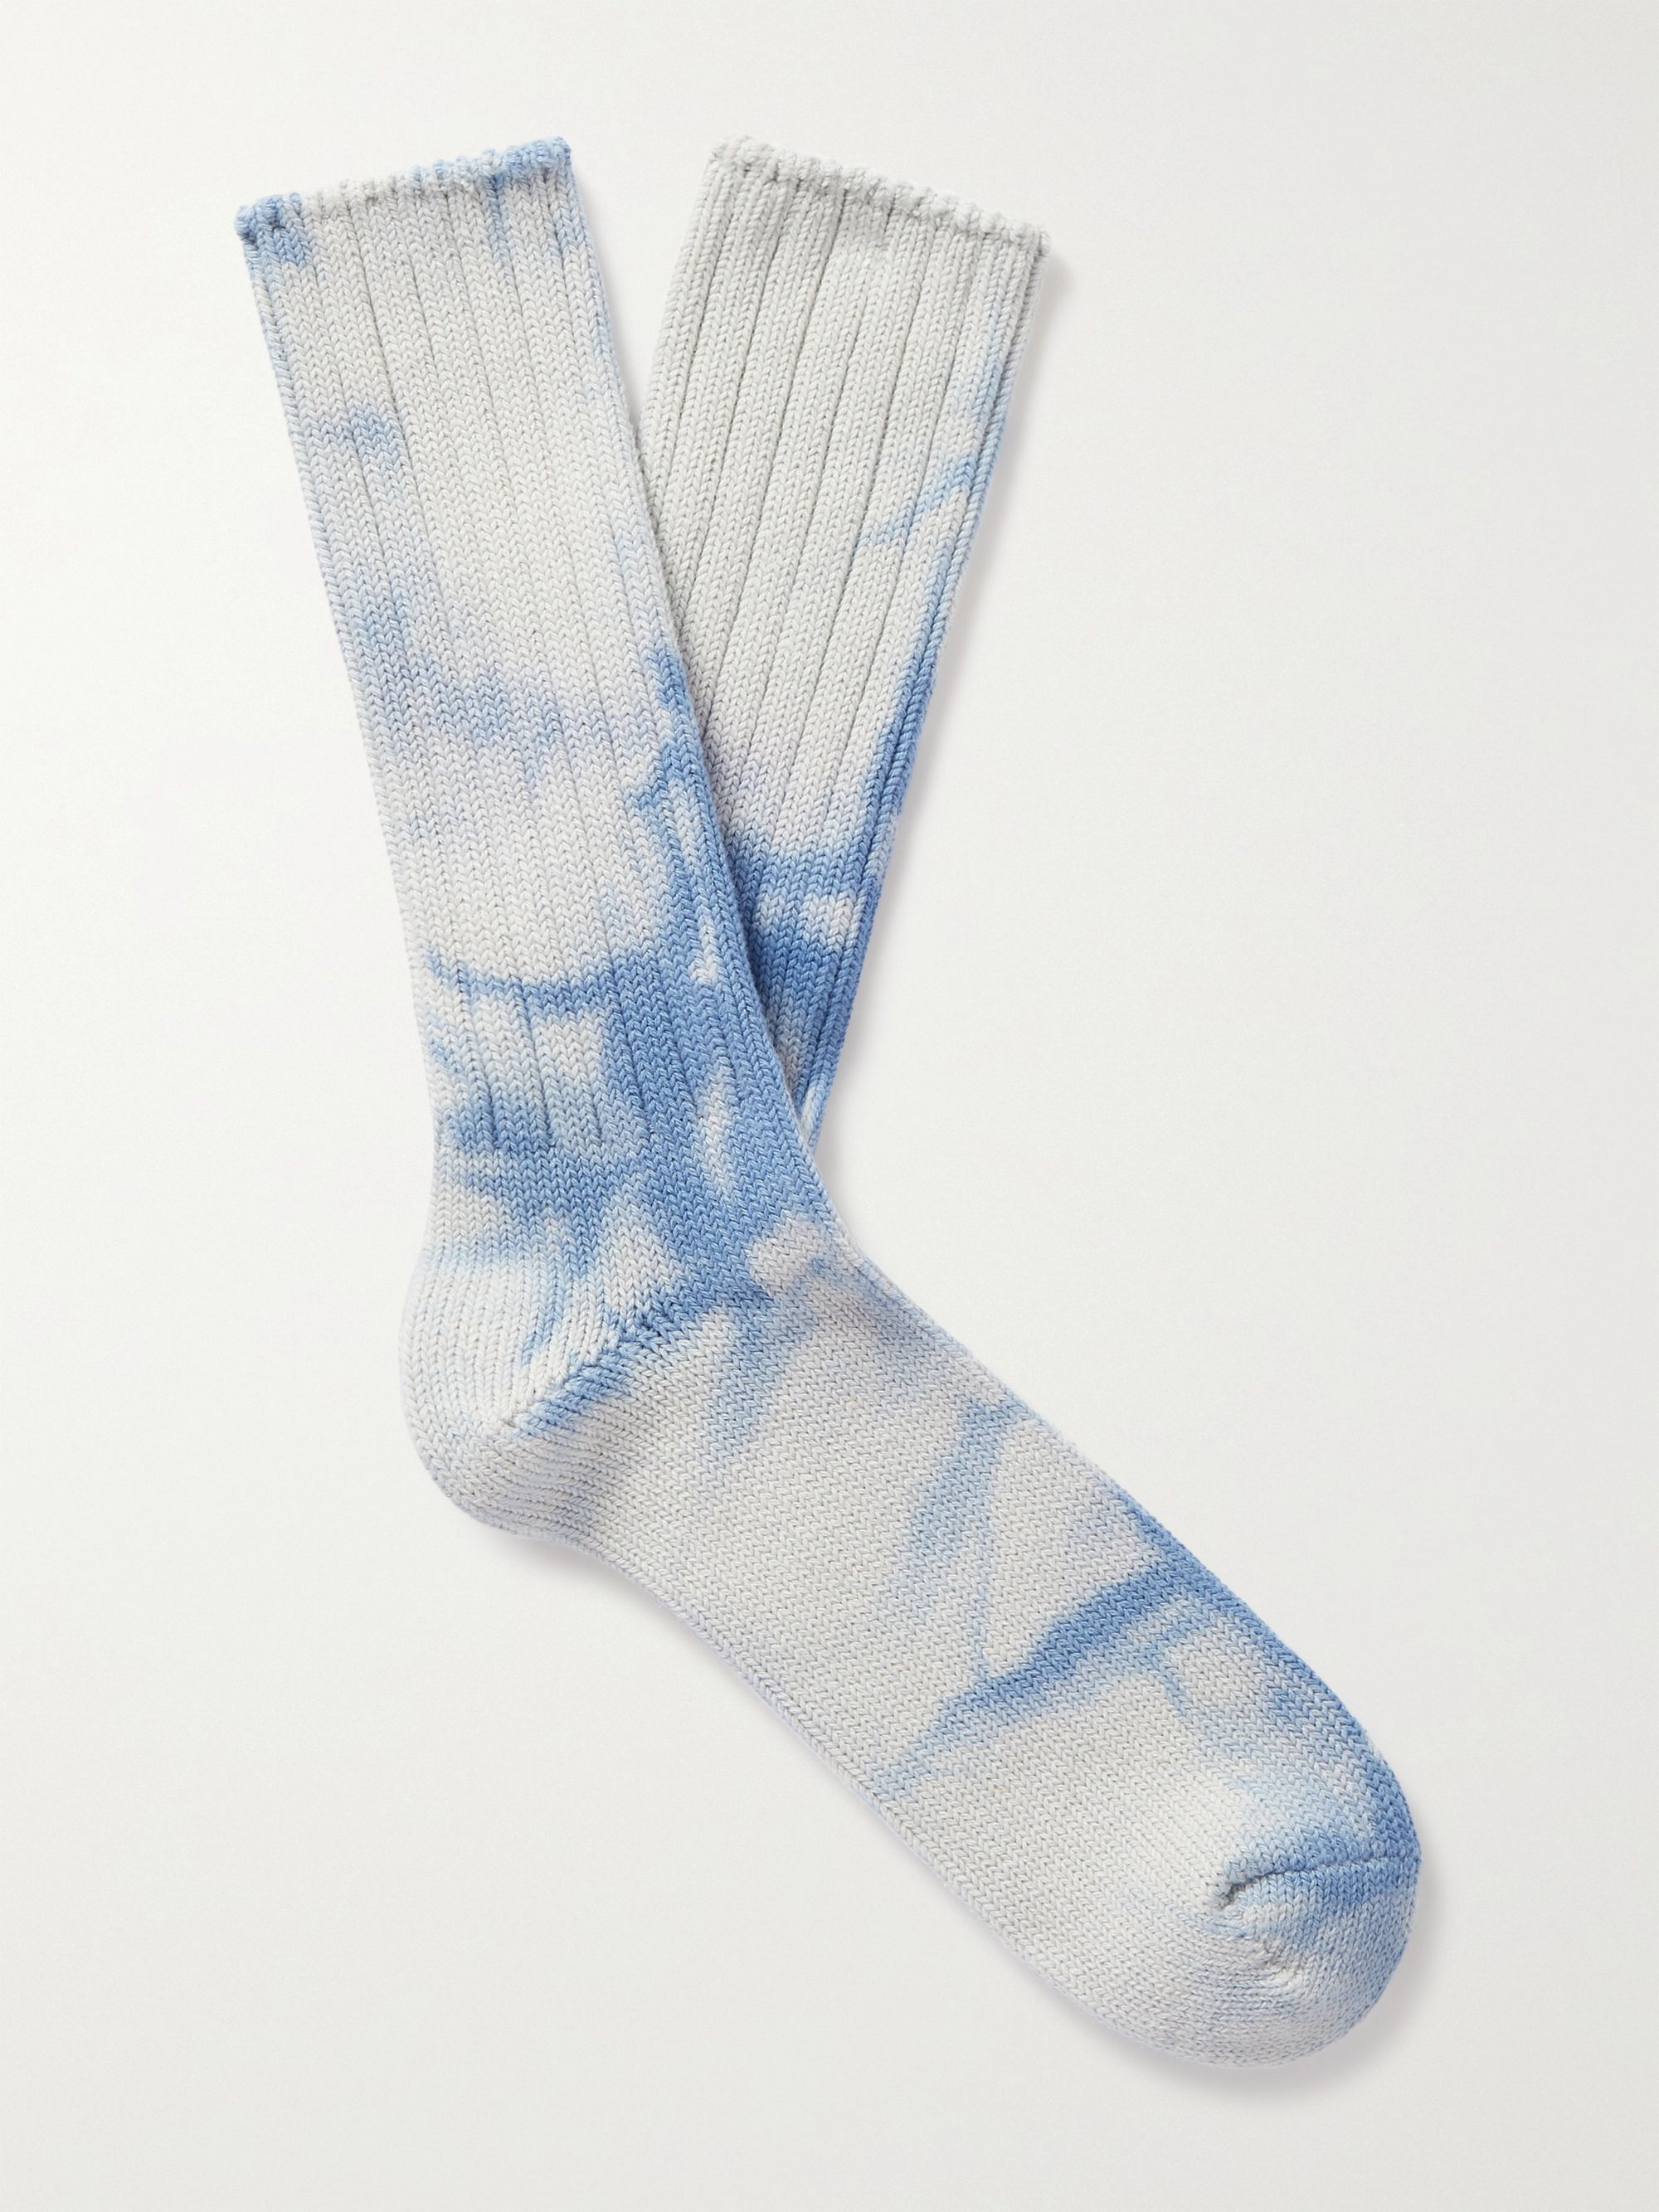 ANONYMOUS ISM Tie-Dyed Cotton-Blend Socks